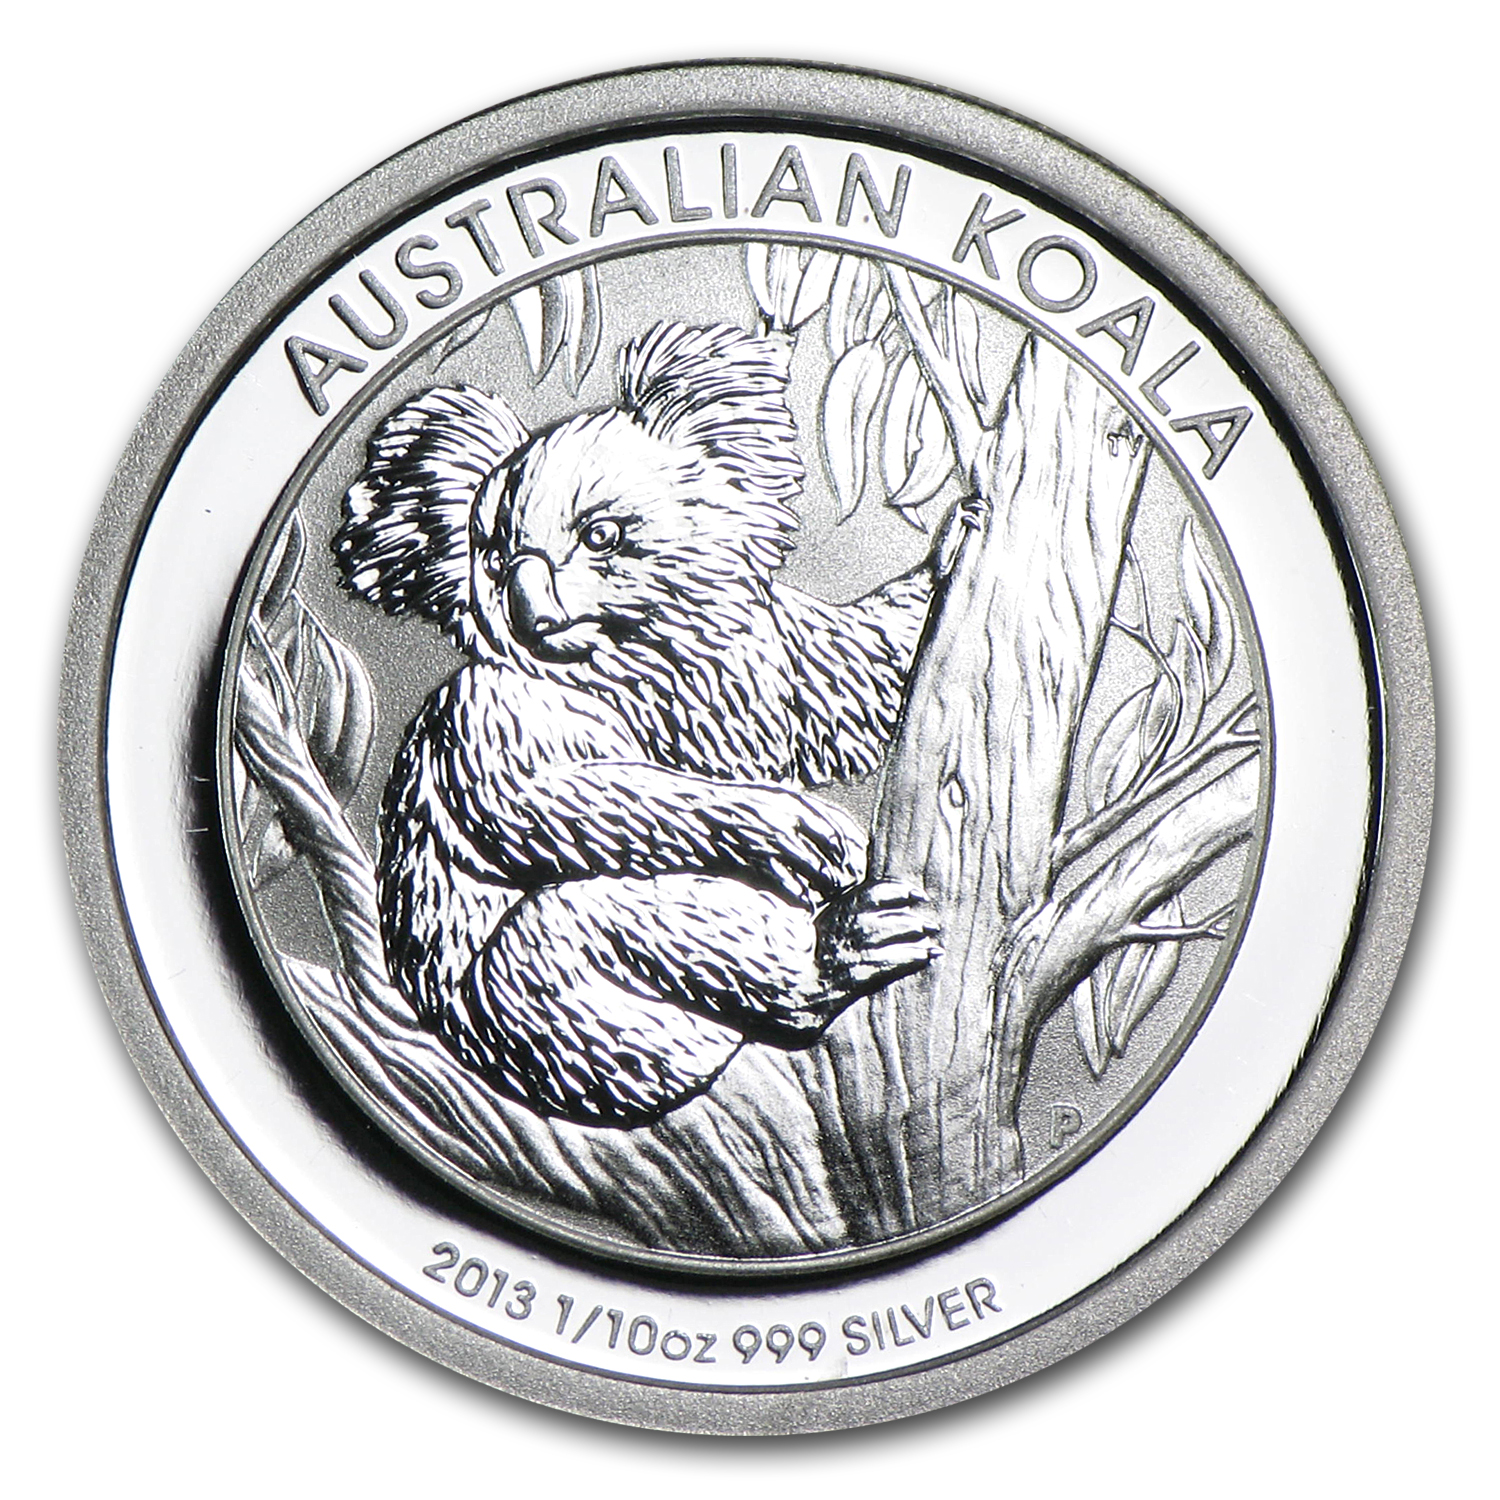 2013 1/10 oz Silver Australian Koala BU (In display card)